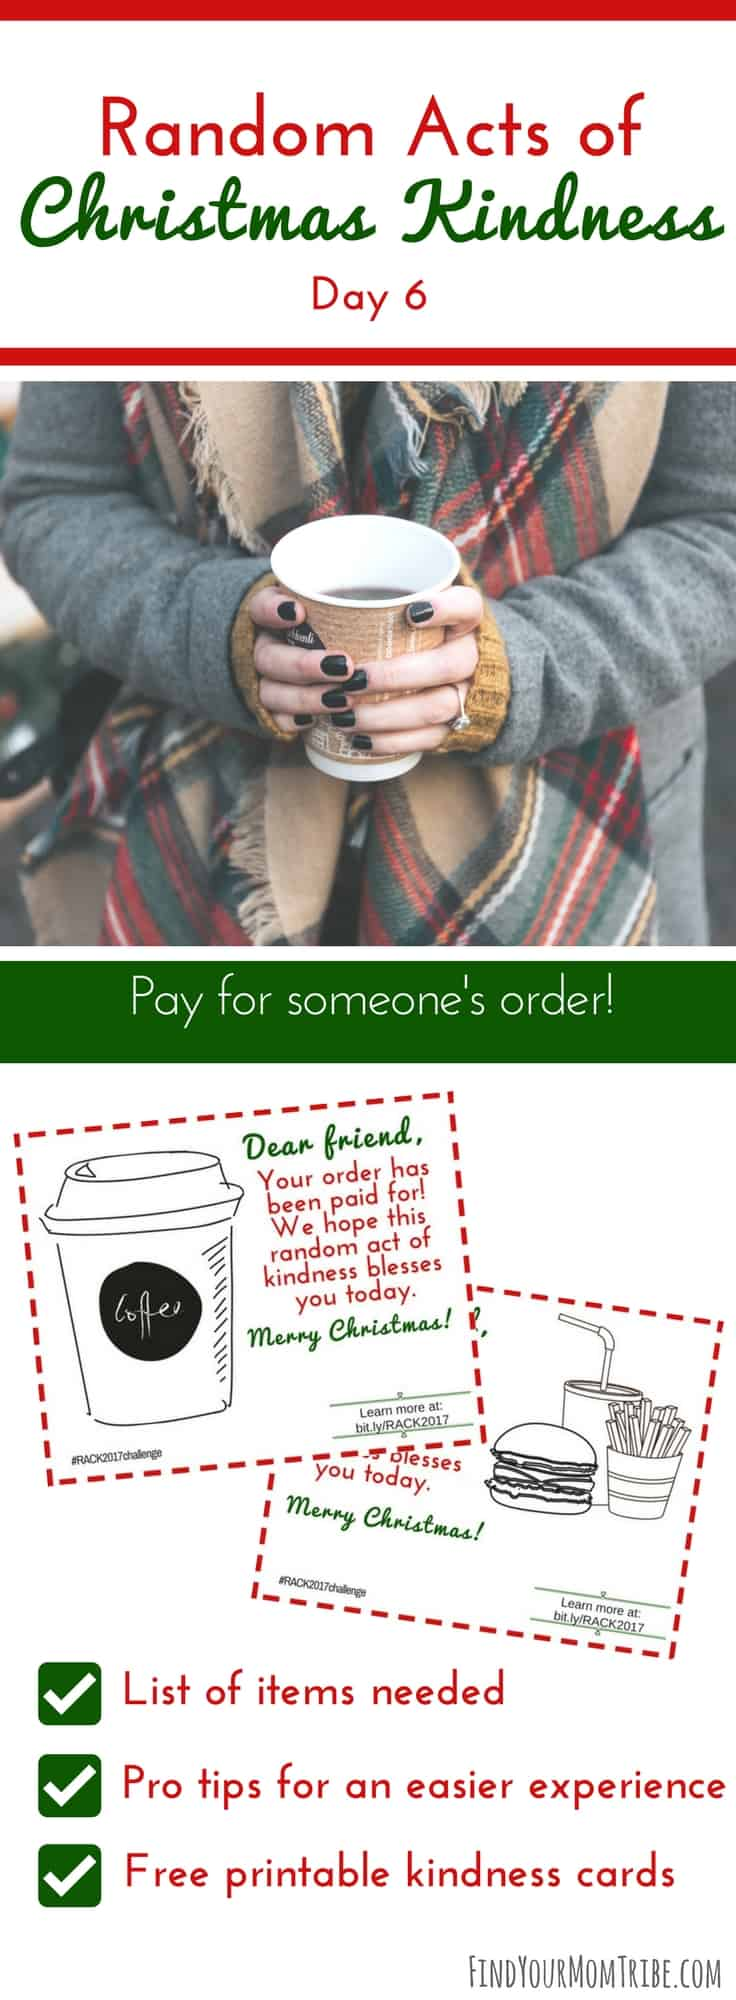 Pay for someone's drive-through order! My kids love this! Random Acts of Christmas Kindness free printable packet with free kindness cards. #Christmas #MerryChristmas #Christmasideas #RandomActsofKindness #RandomActsofChristmasKindness #RACK